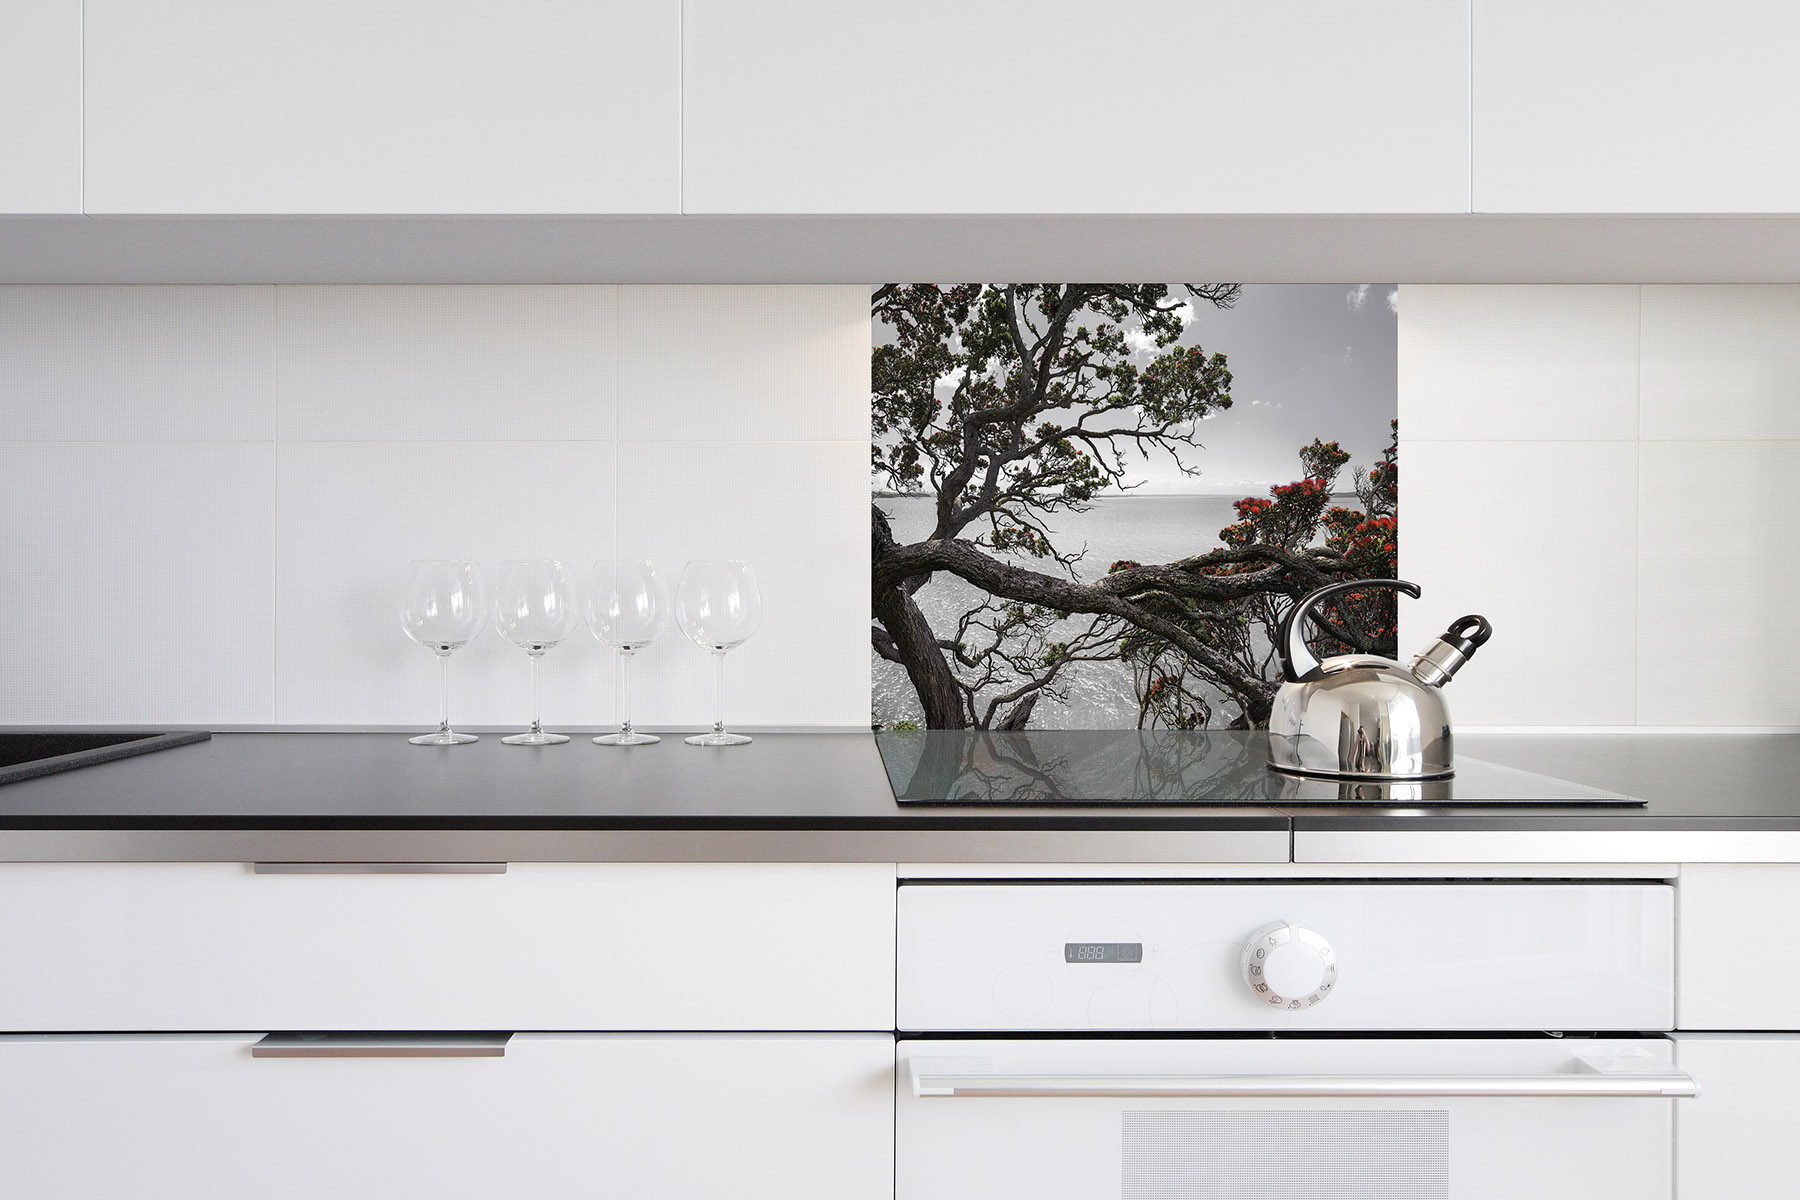 Eternal Home (no blue version) shown in the 900x750mm size DIY splashback.